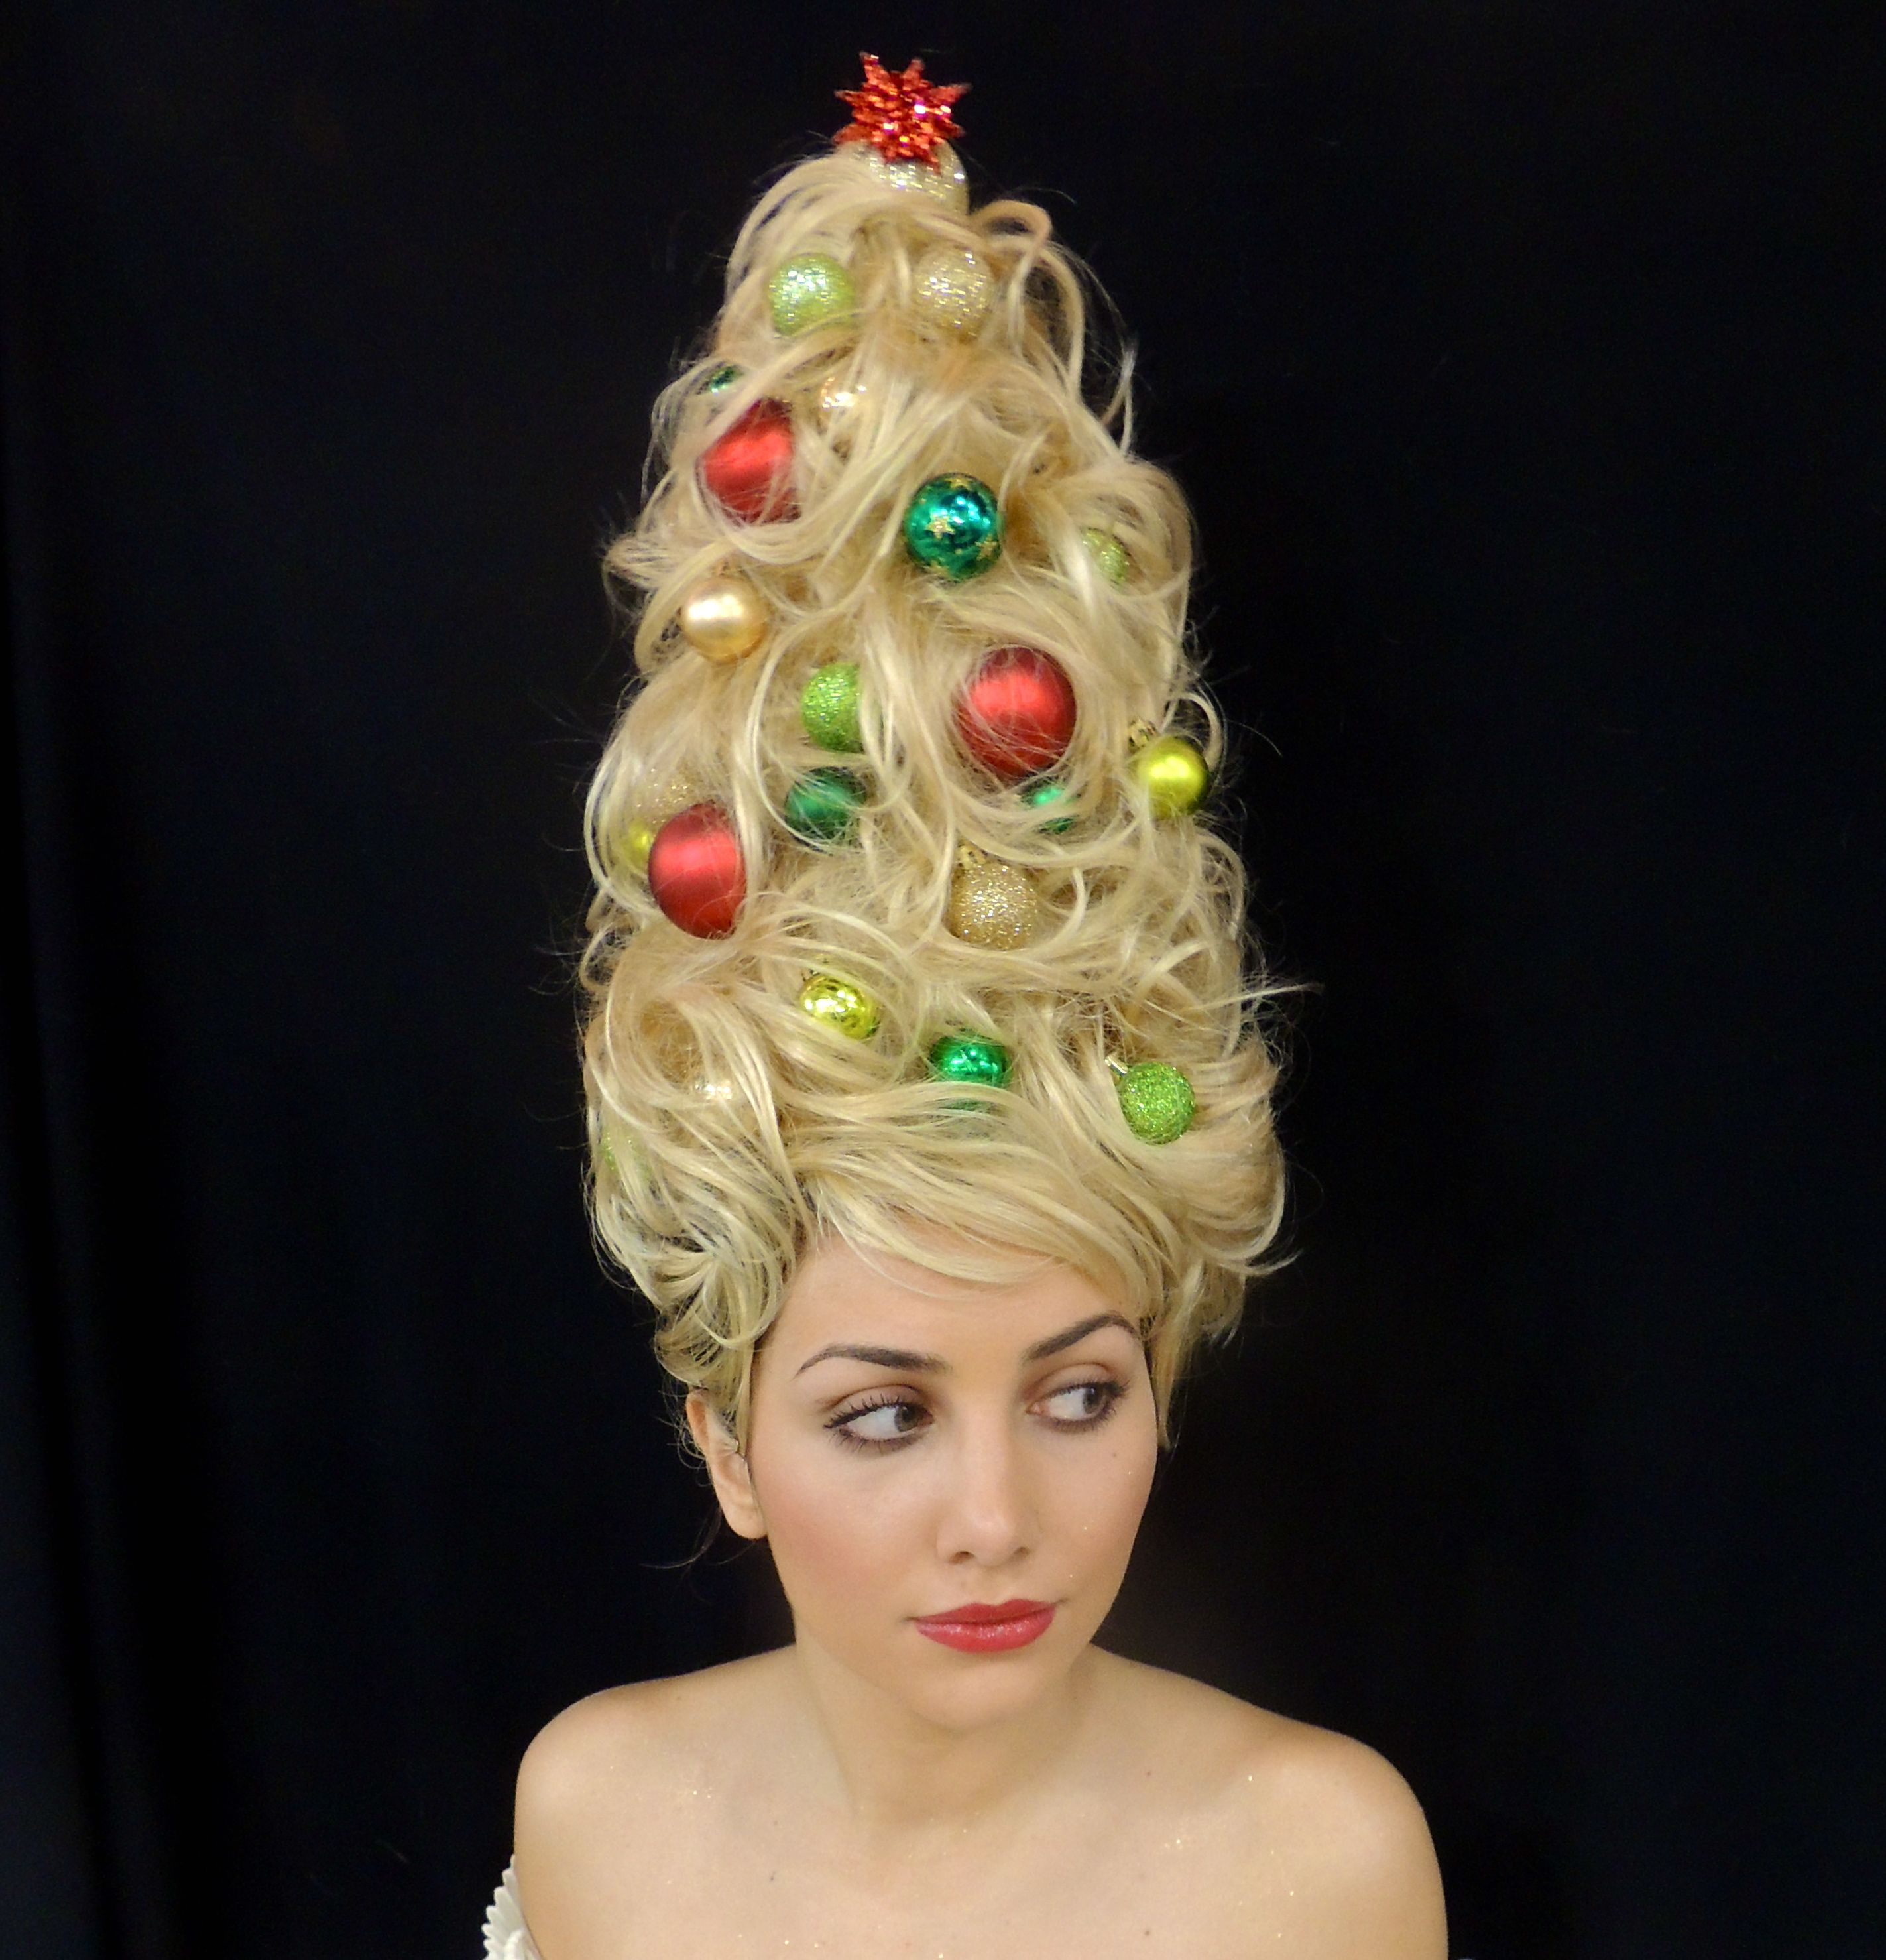 Hair stylist christmas ornaments - 1000 Images About Salon On Pinterest Survival Kits Stress And Employee Appreciation